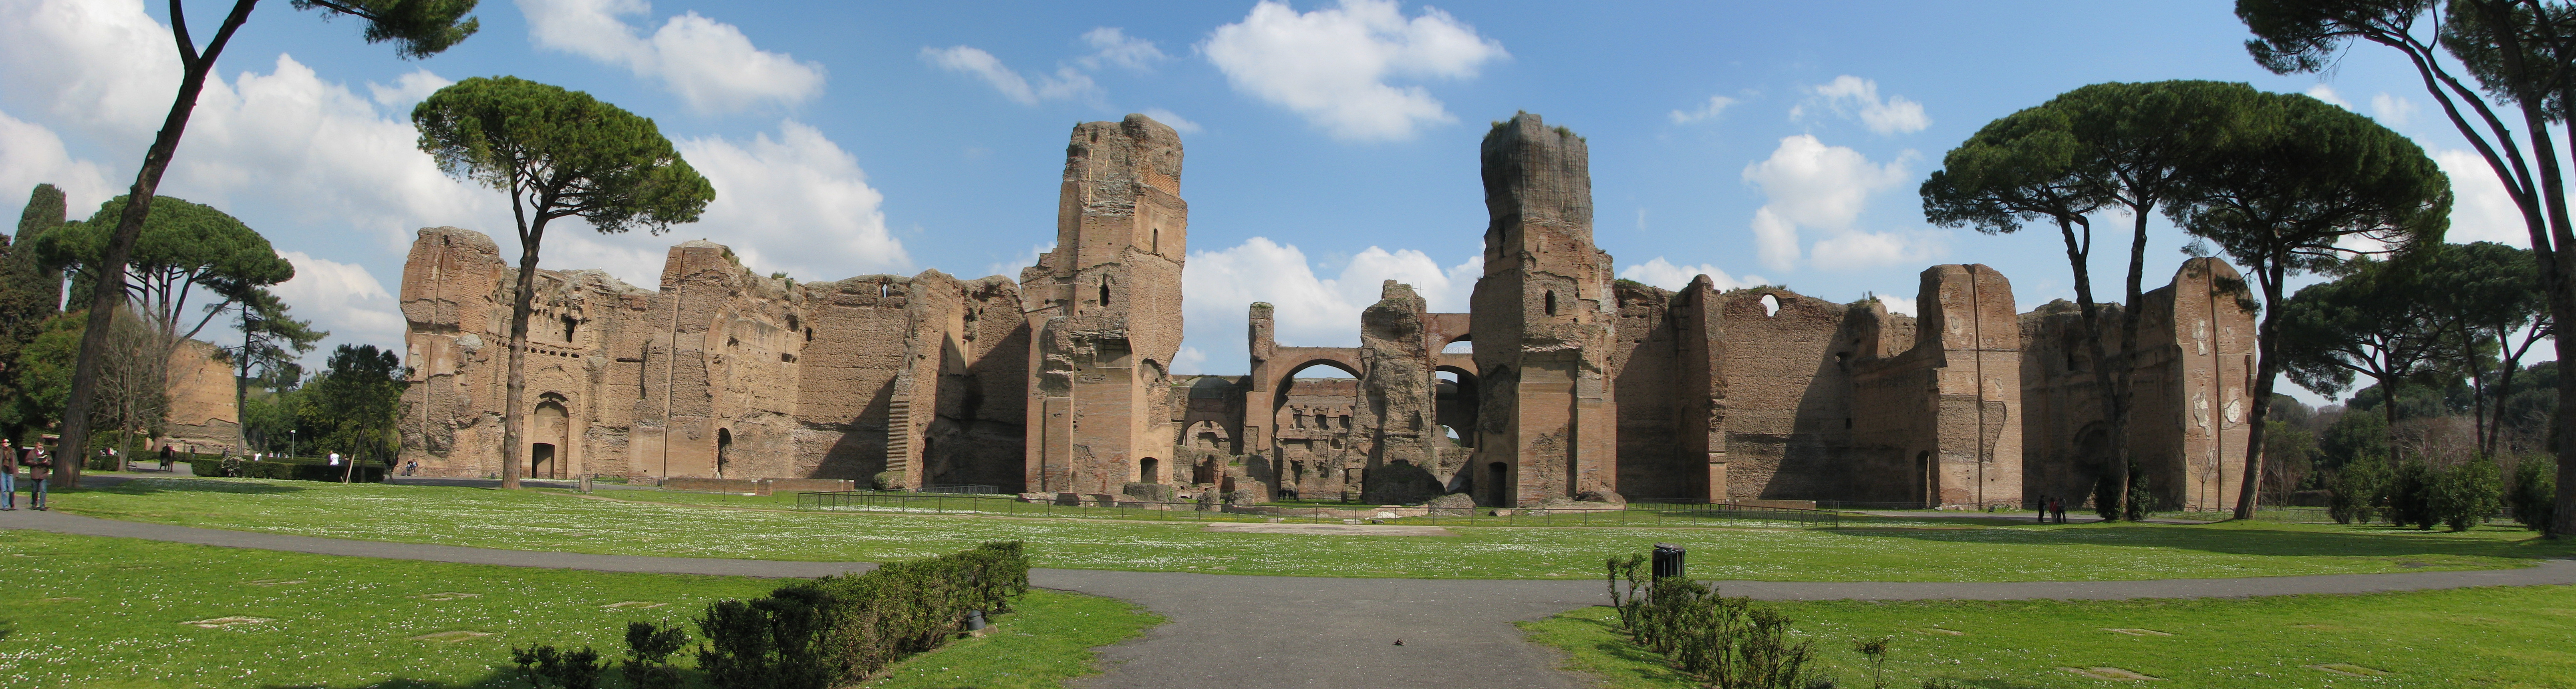 top 10 archaeological sites in rome part 2 cultural travel guide. Black Bedroom Furniture Sets. Home Design Ideas